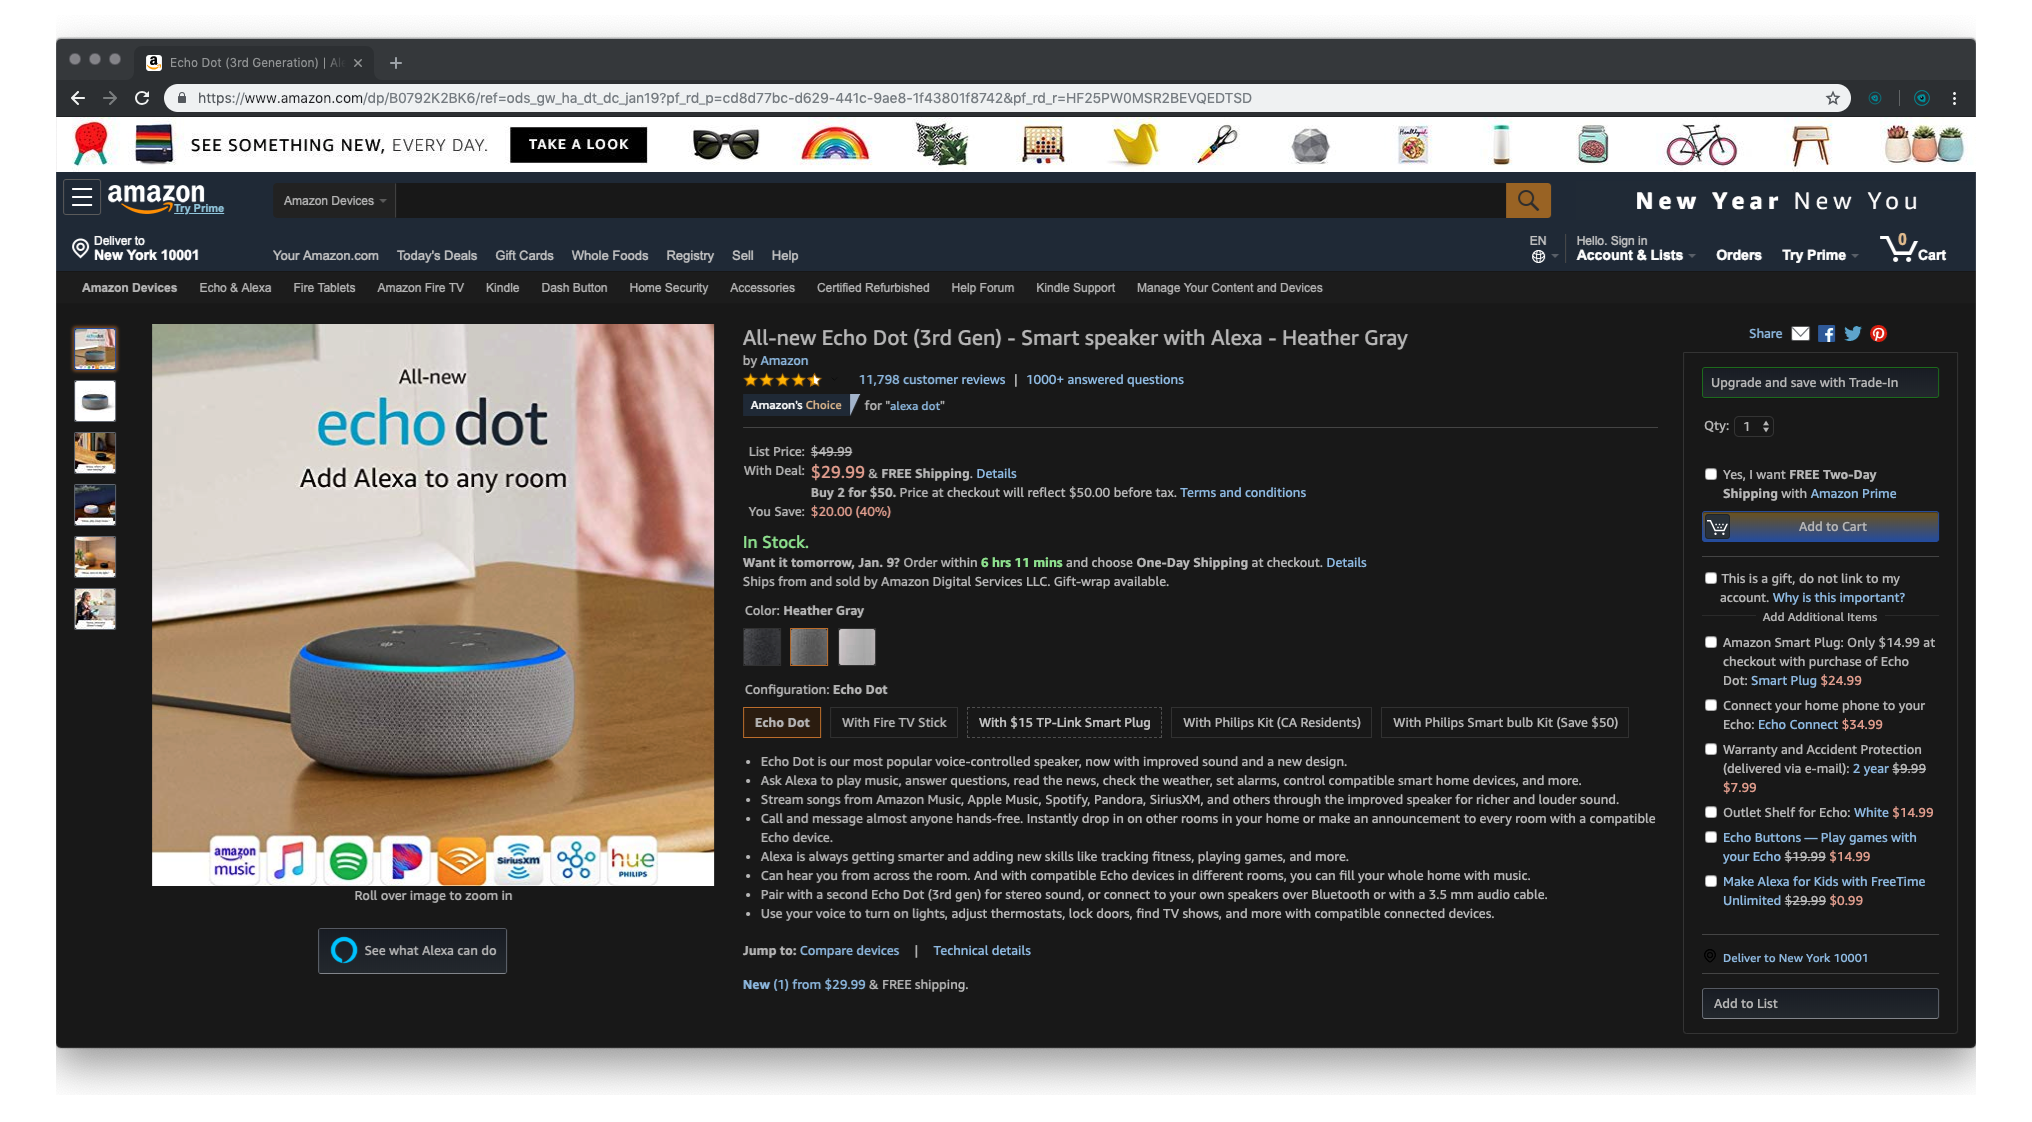 Amazon-dark-mode-product-page